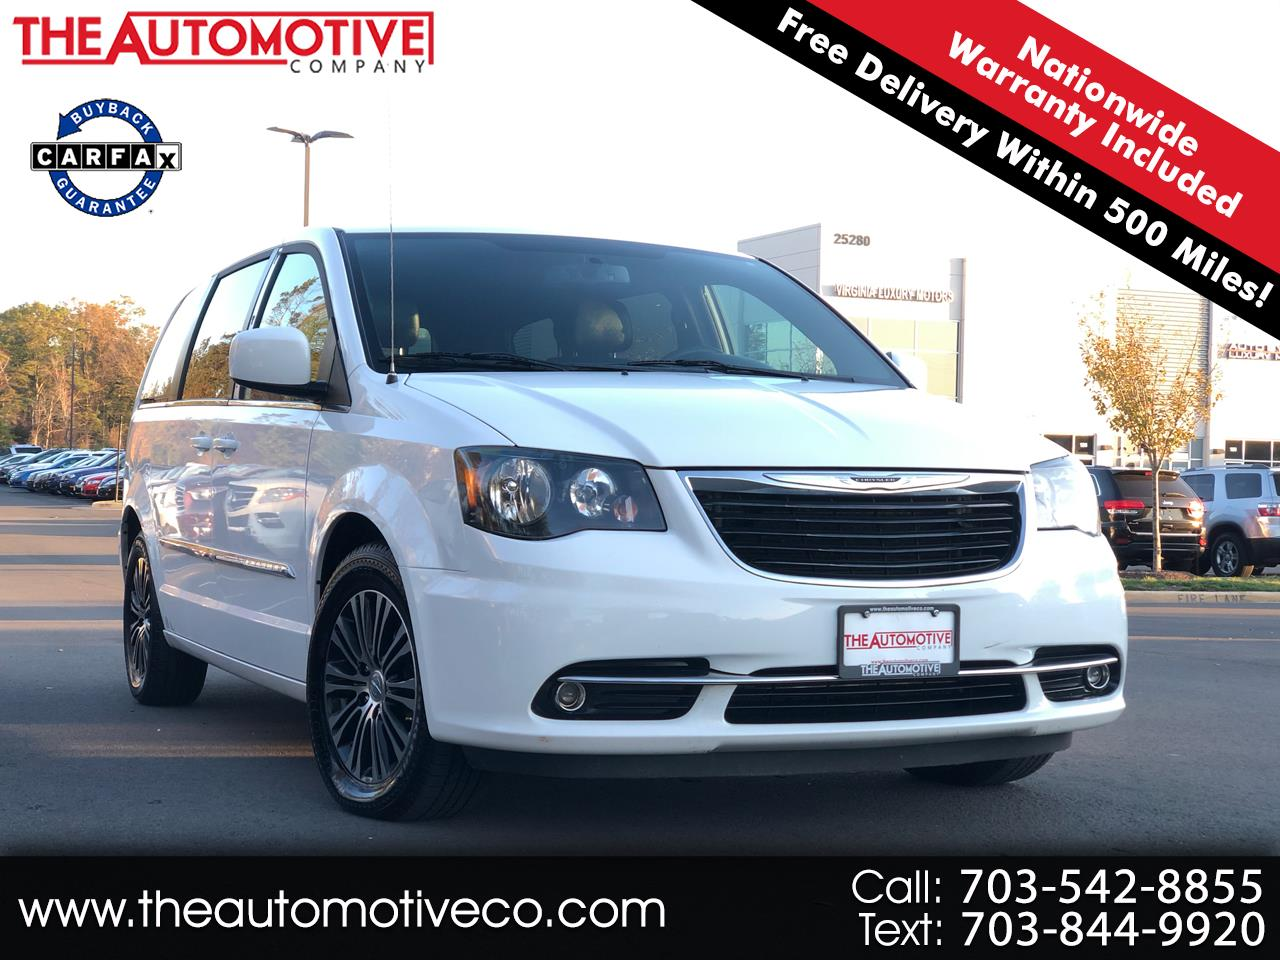 Chrysler Town & Country 4dr Wgn S 2014